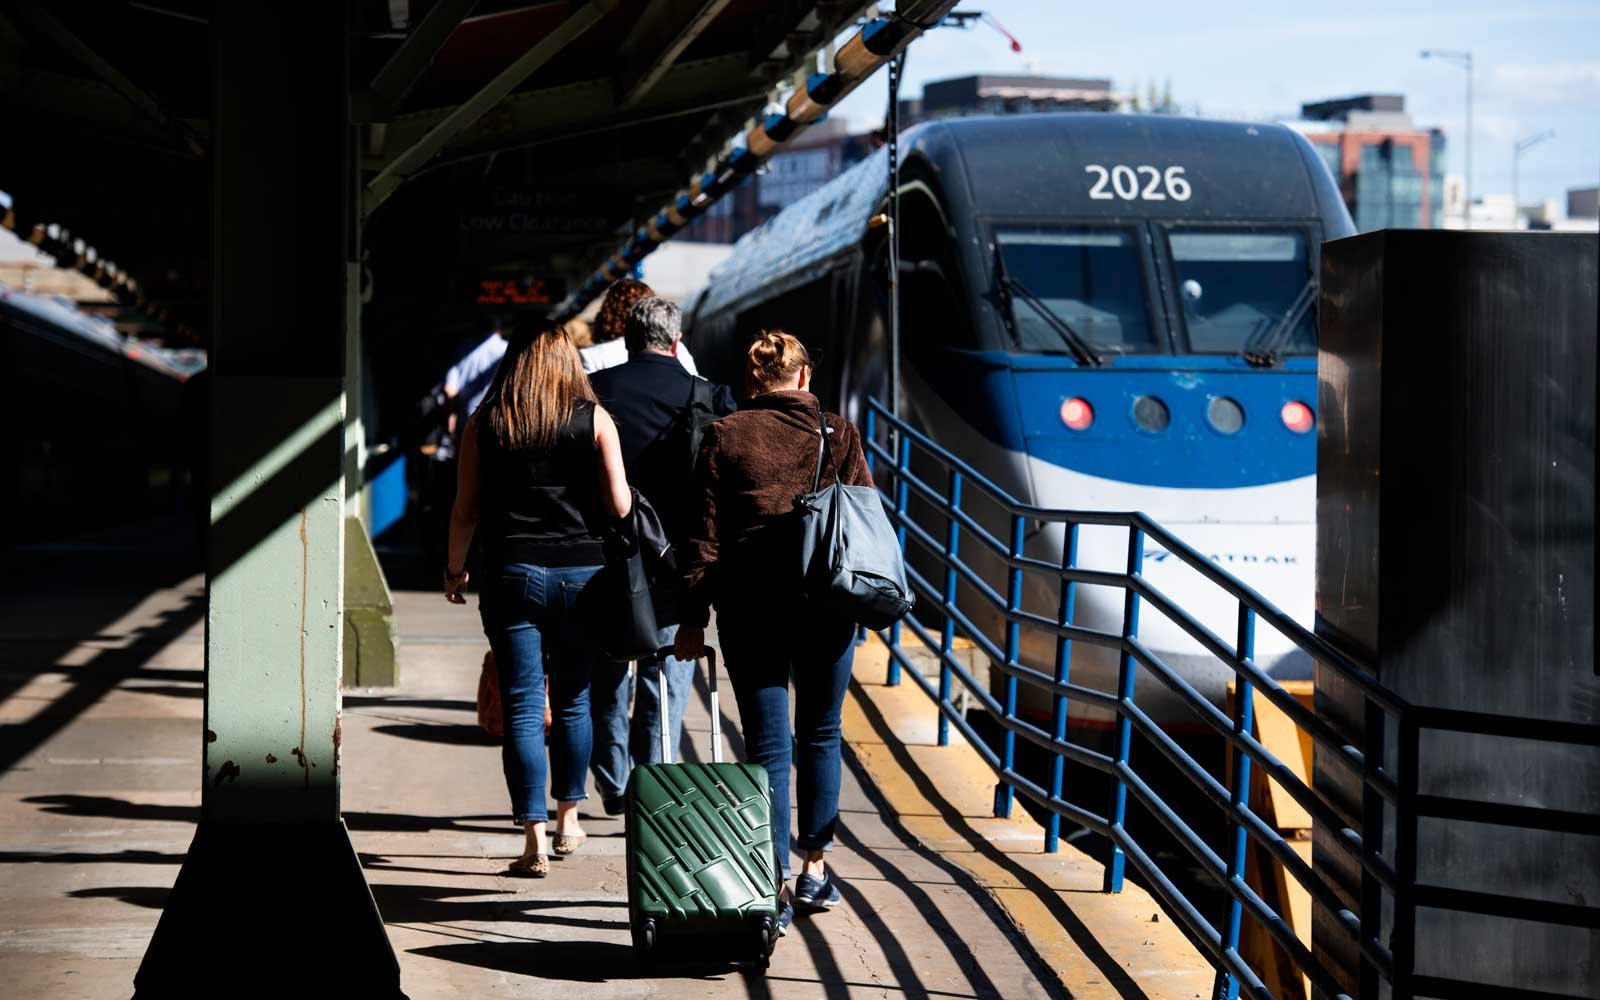 Amtrak's Black Friday sale has tickets as low as $19 until Monday